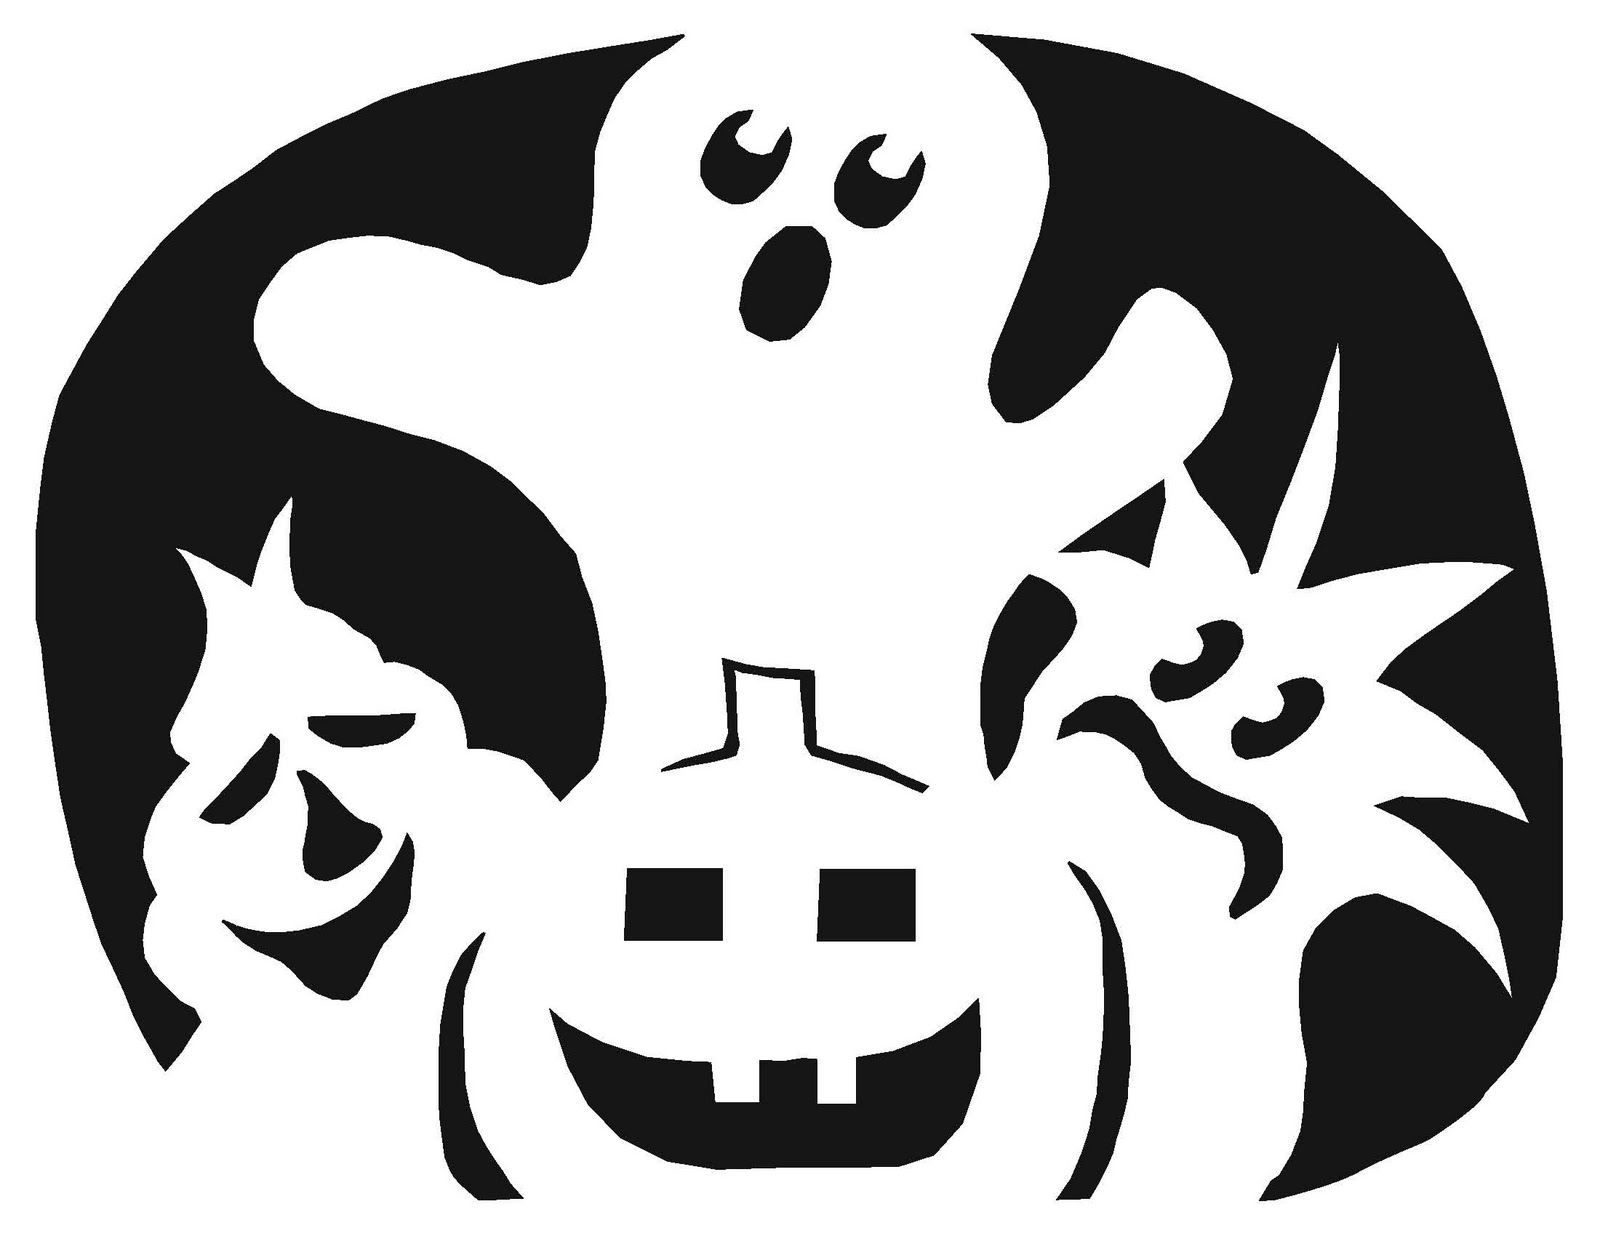 Free^ Halloween Pumpkin Carving Templates To Print And Download 2018 - Free Printable Pumpkin Carving Stencils For Kids